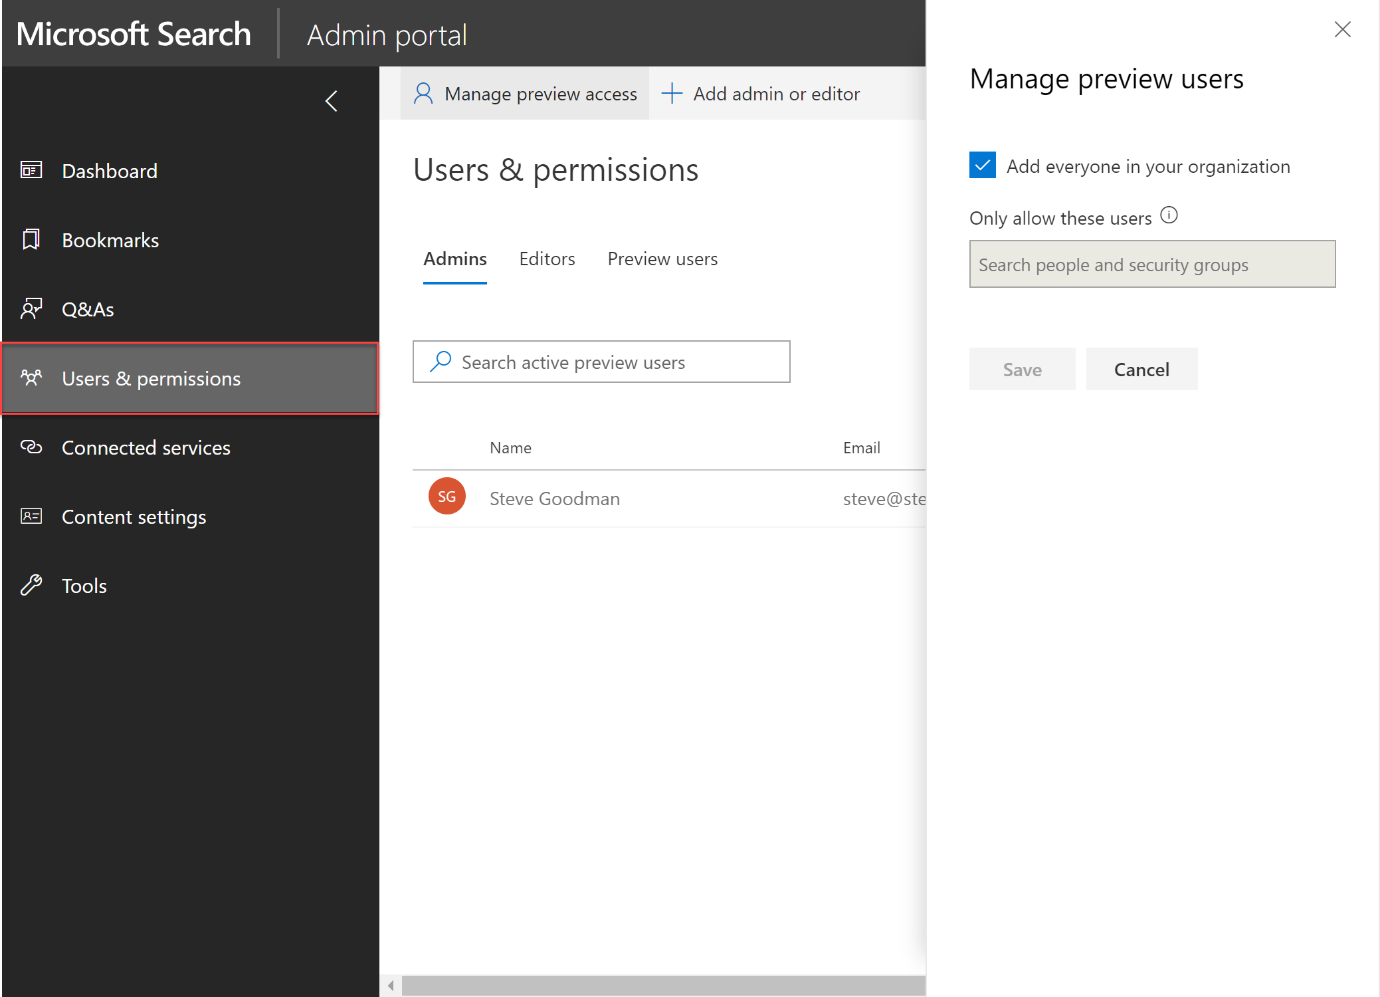 Figure 4: Selecting users and permissions